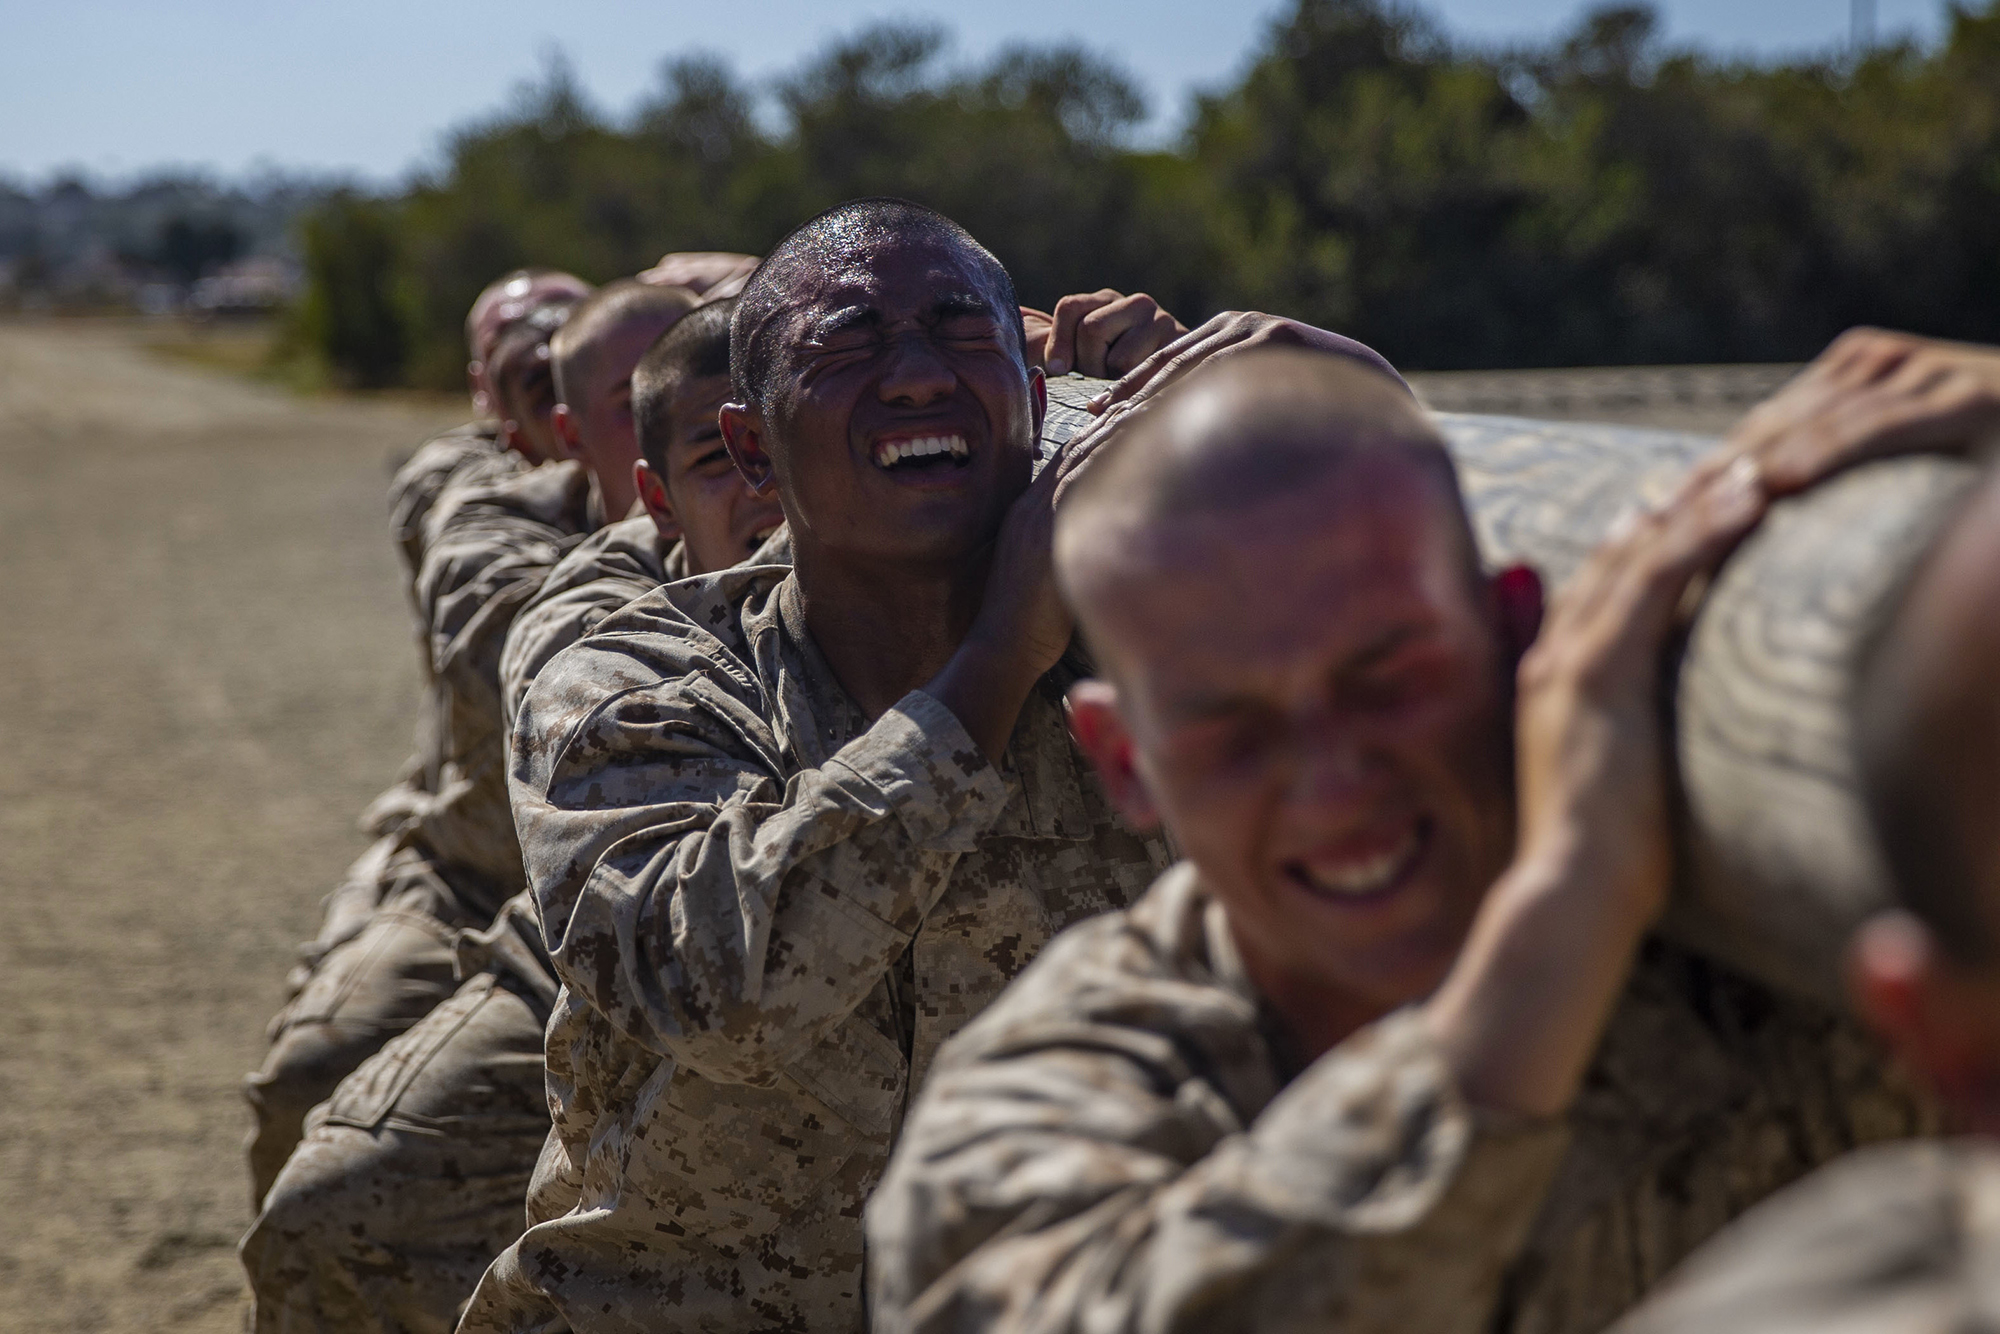 Recruits with Golf Company, 2nd Recruit Training Battalion, execute squats with a log during log drills at Marine Corps Recruit Depot San Diego on May 25, 2021, in California. (Lance Cpl. Grace J. Kindred/Marine Corps)